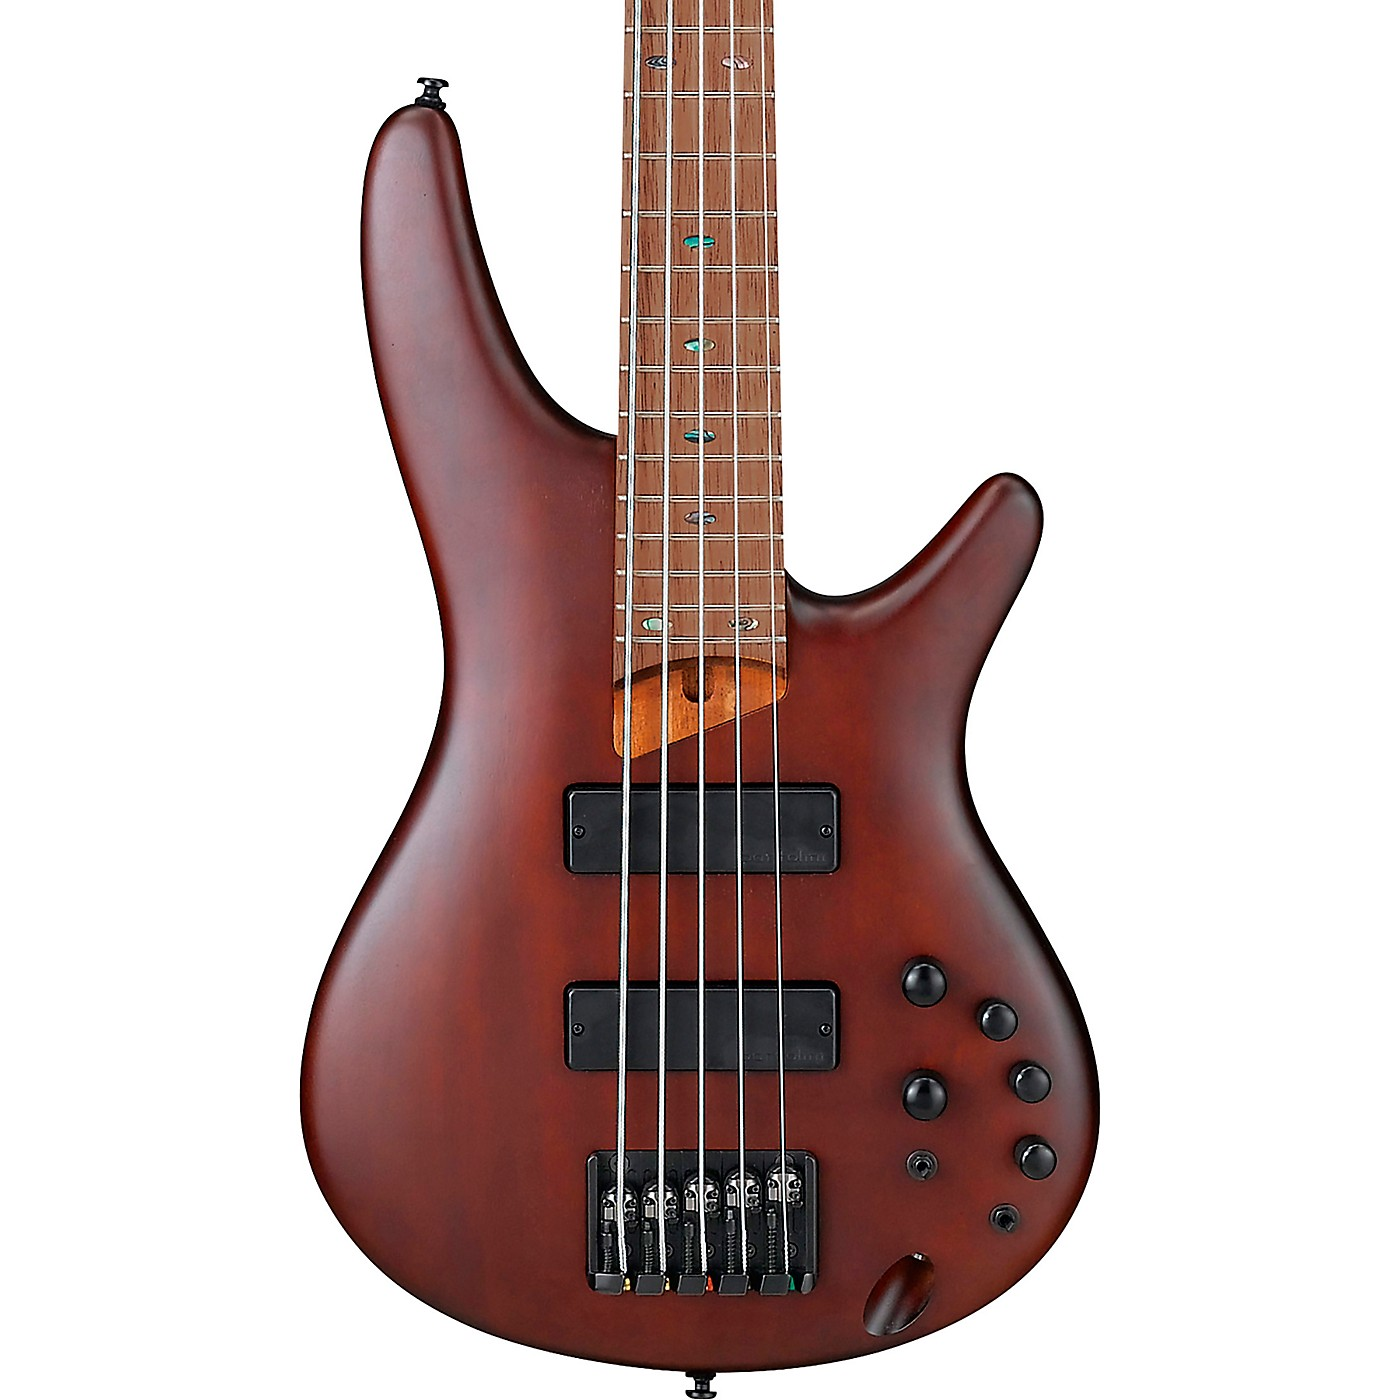 Ibanez SR505EZW 5-String Electric Bass Guitar thumbnail